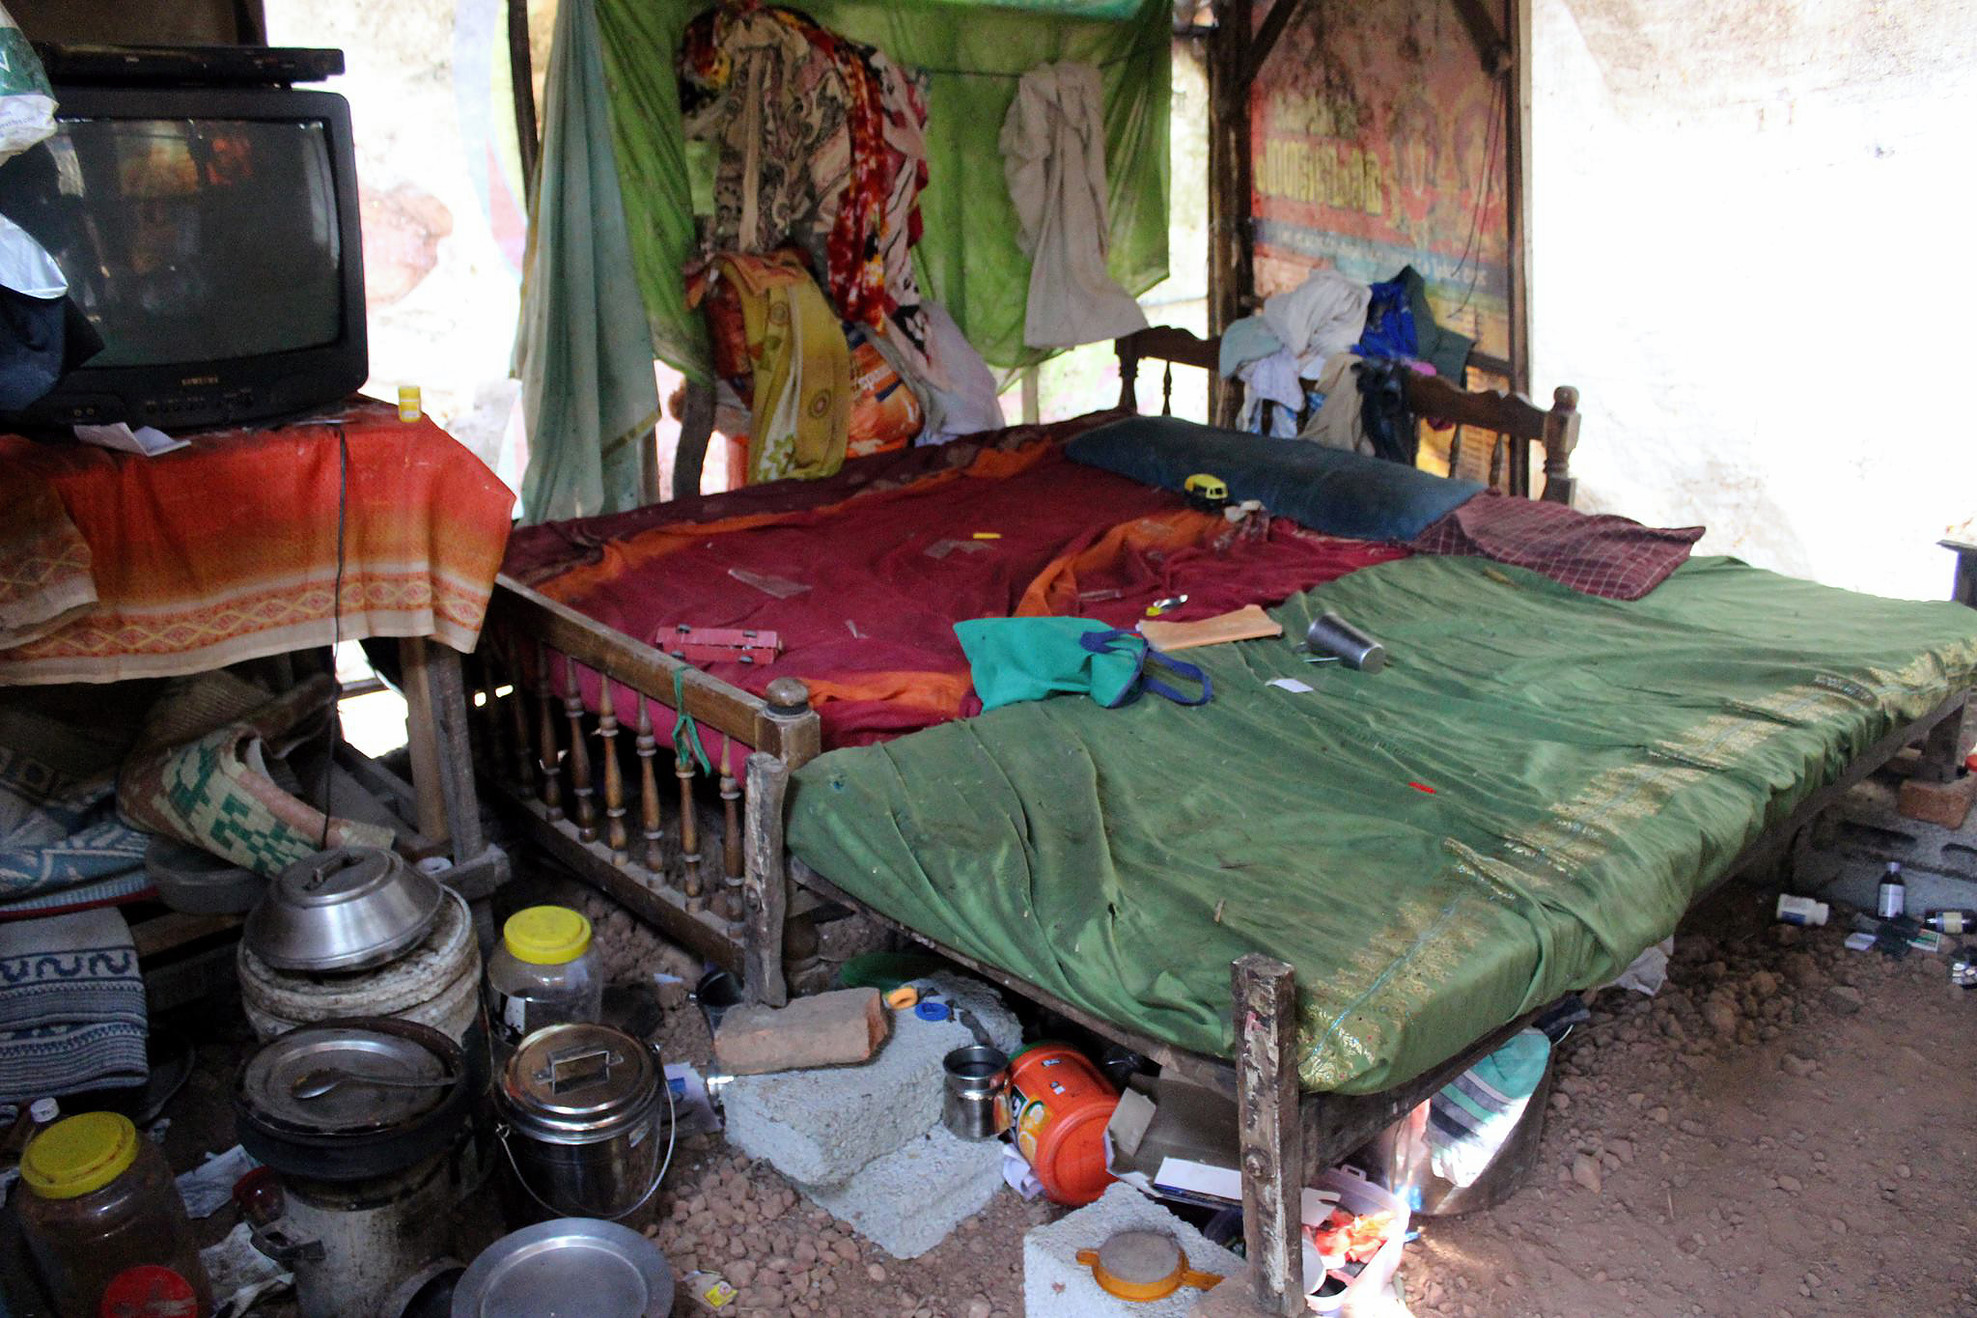 The basic conditions of many families who live below the Indian poverty line.